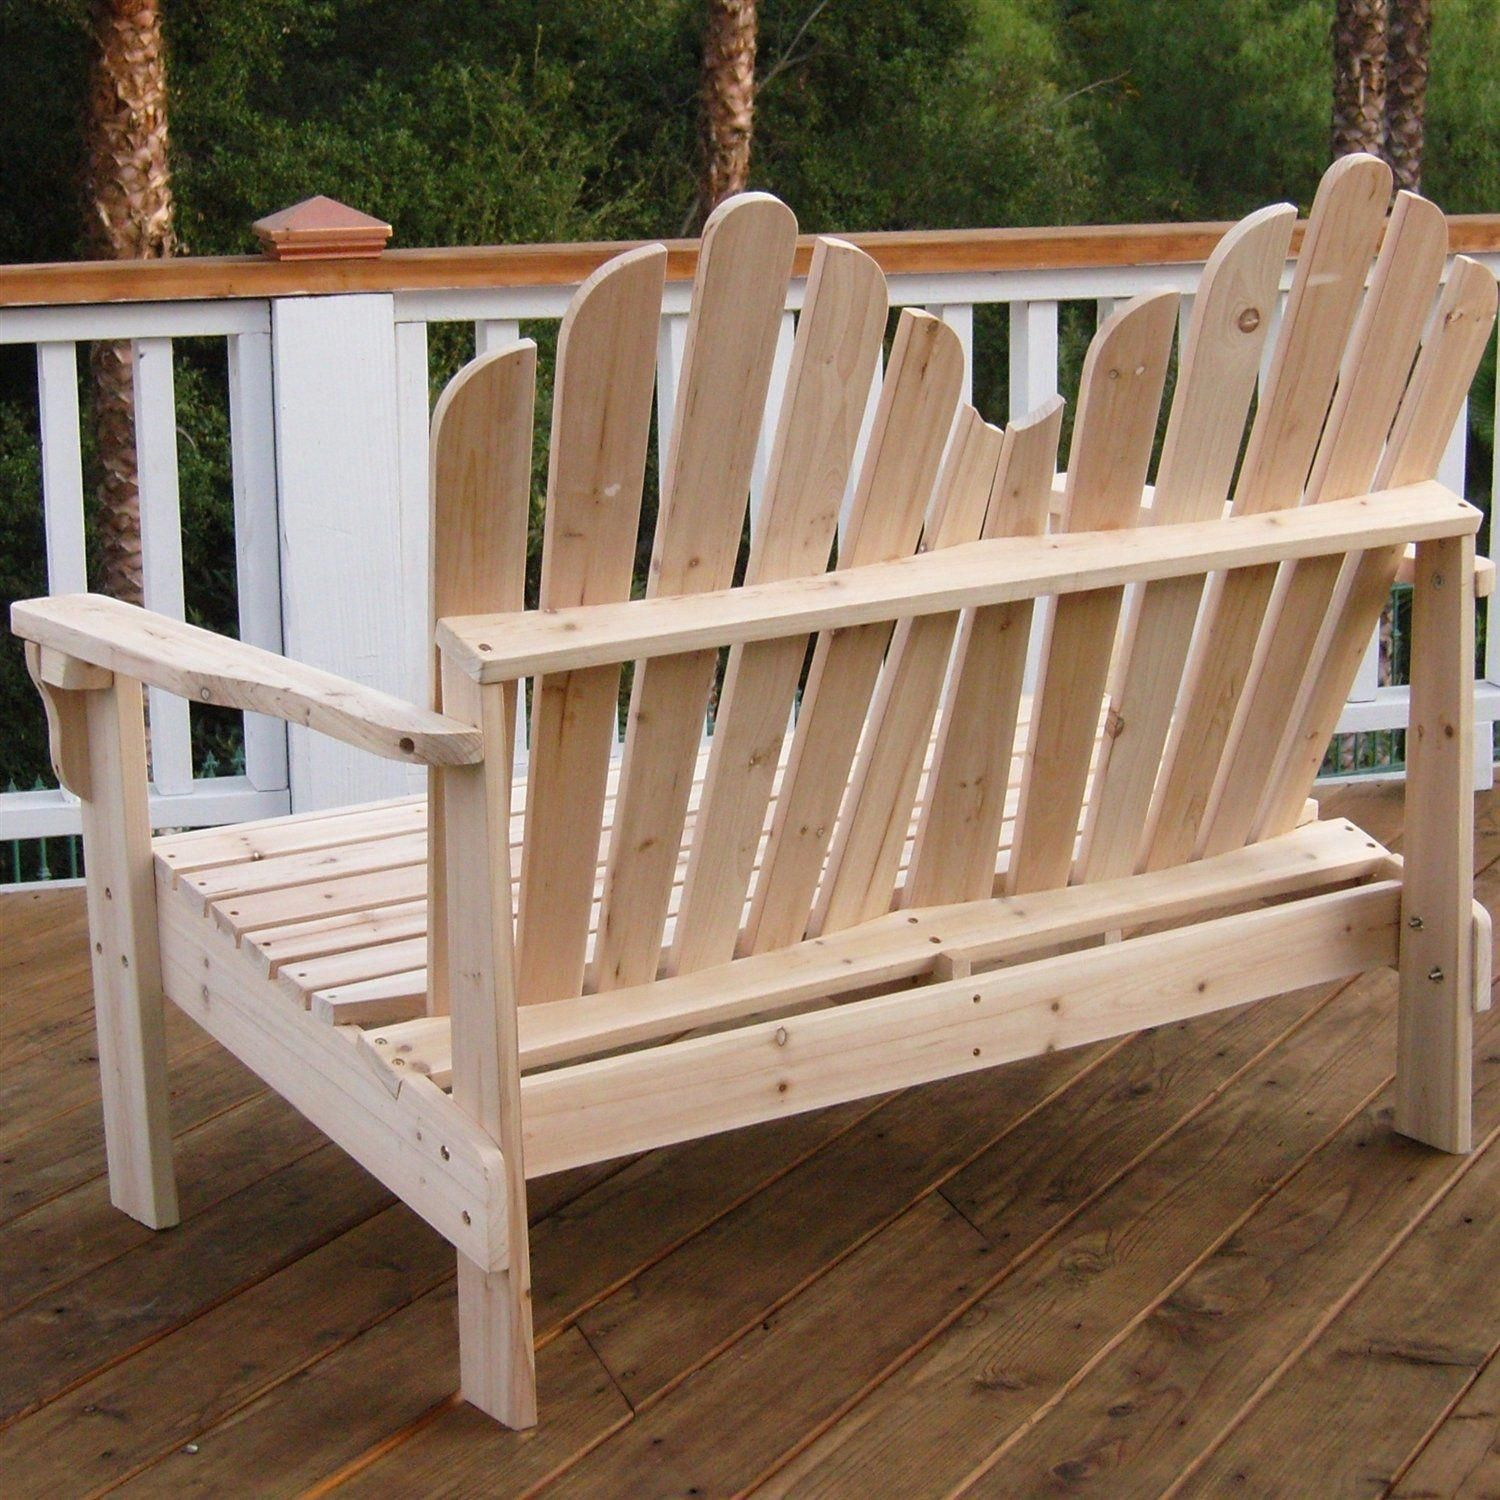 This 2 Seat Adirondack Style Outdoor Cedar Wood Garden Bench Inside 2 Person Natural Cedar Wood Outdoor Gliders (Image 24 of 25)